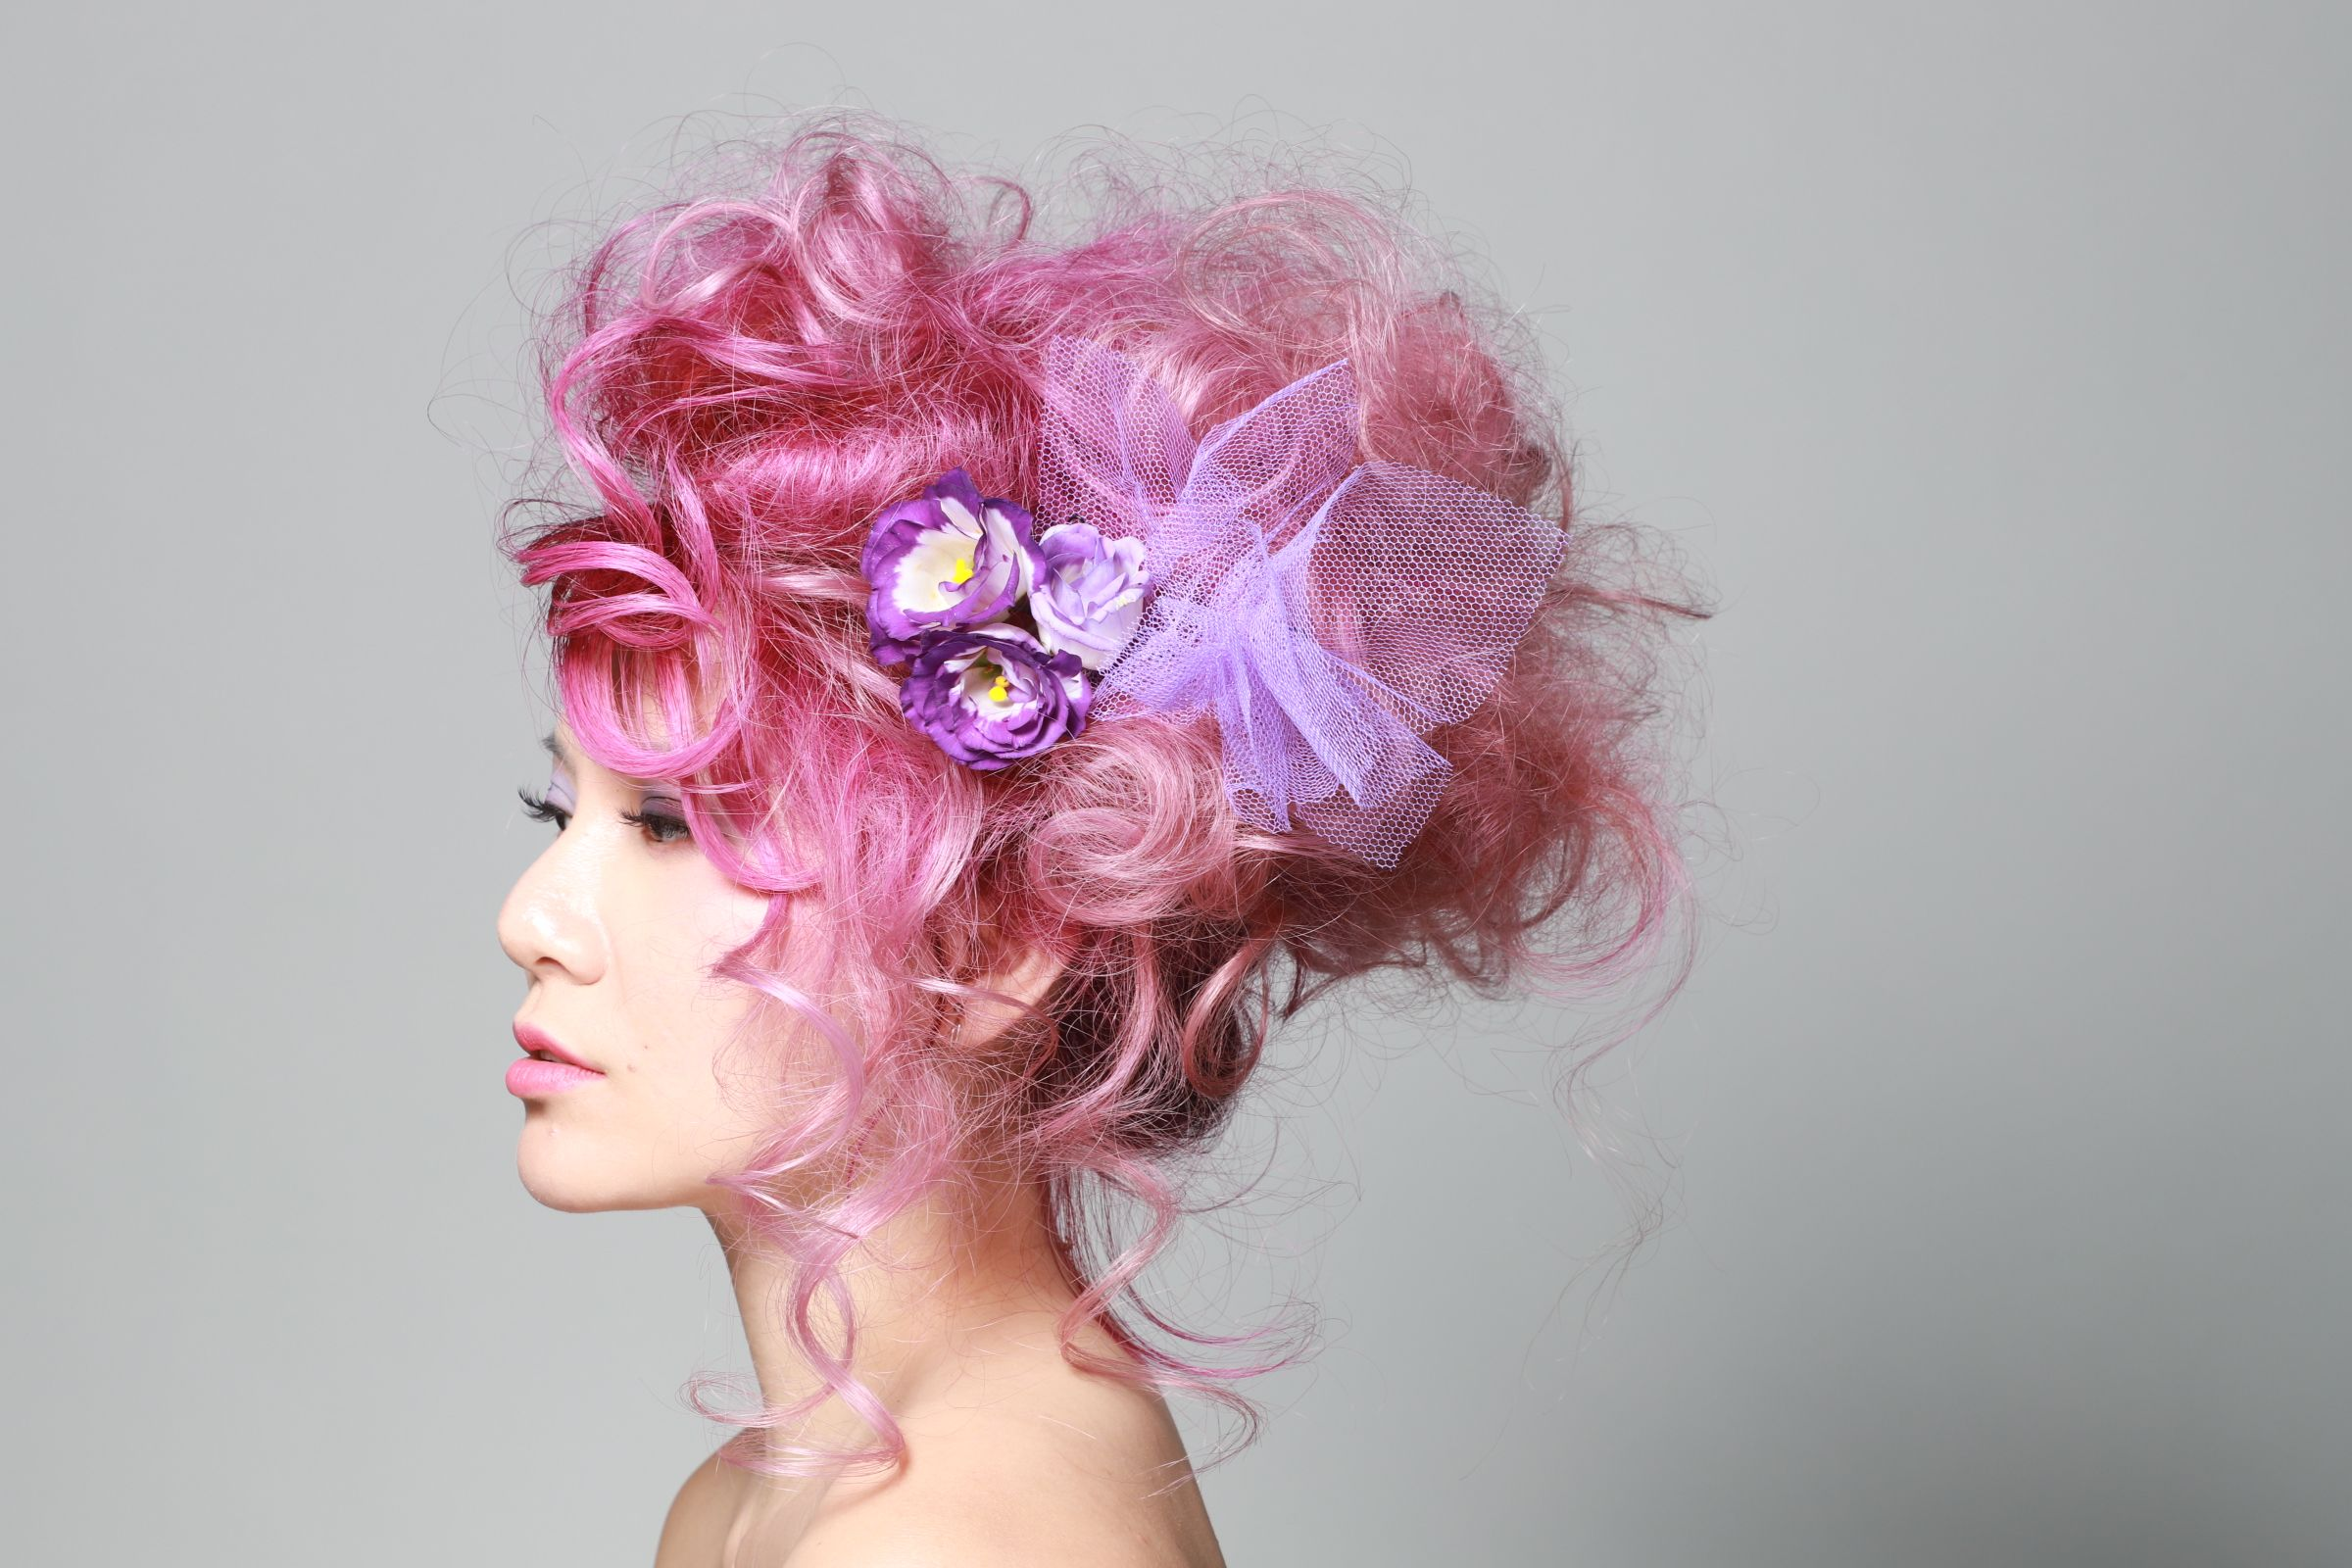 Pin by Kevin Leung on Creative hair Creative hairstyles